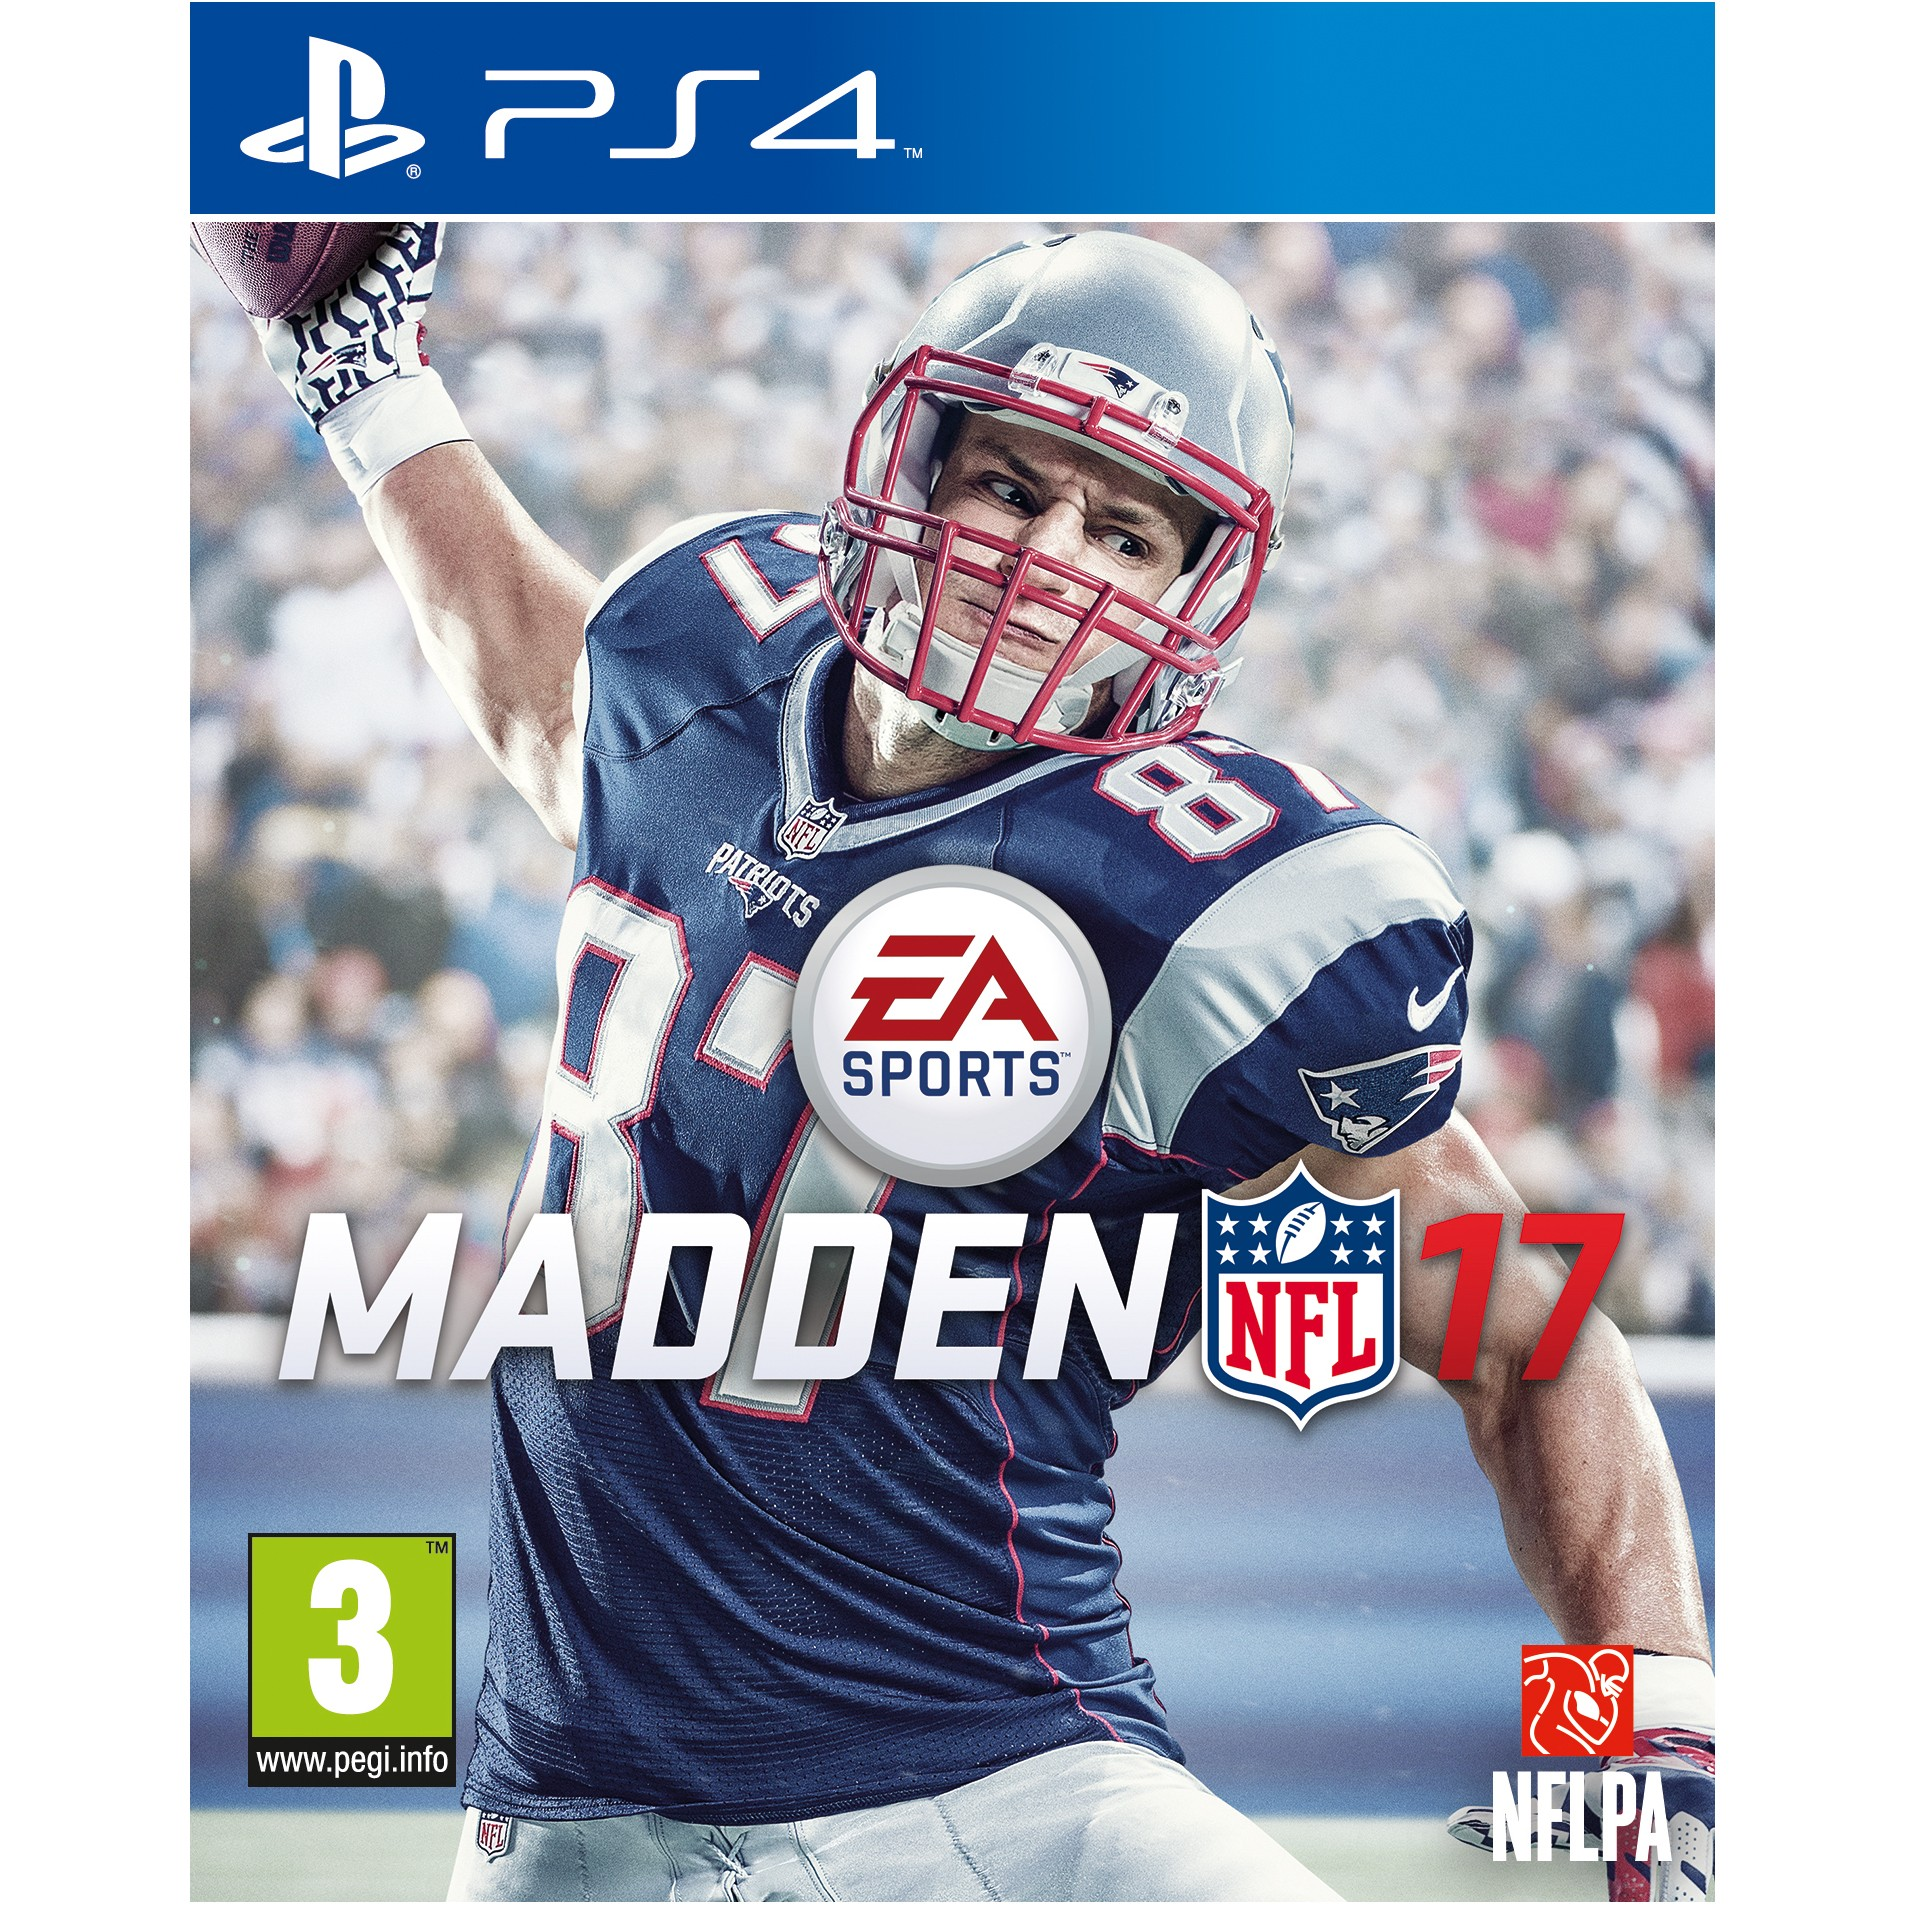 1026587 : Madden NFL 14 (PS4)